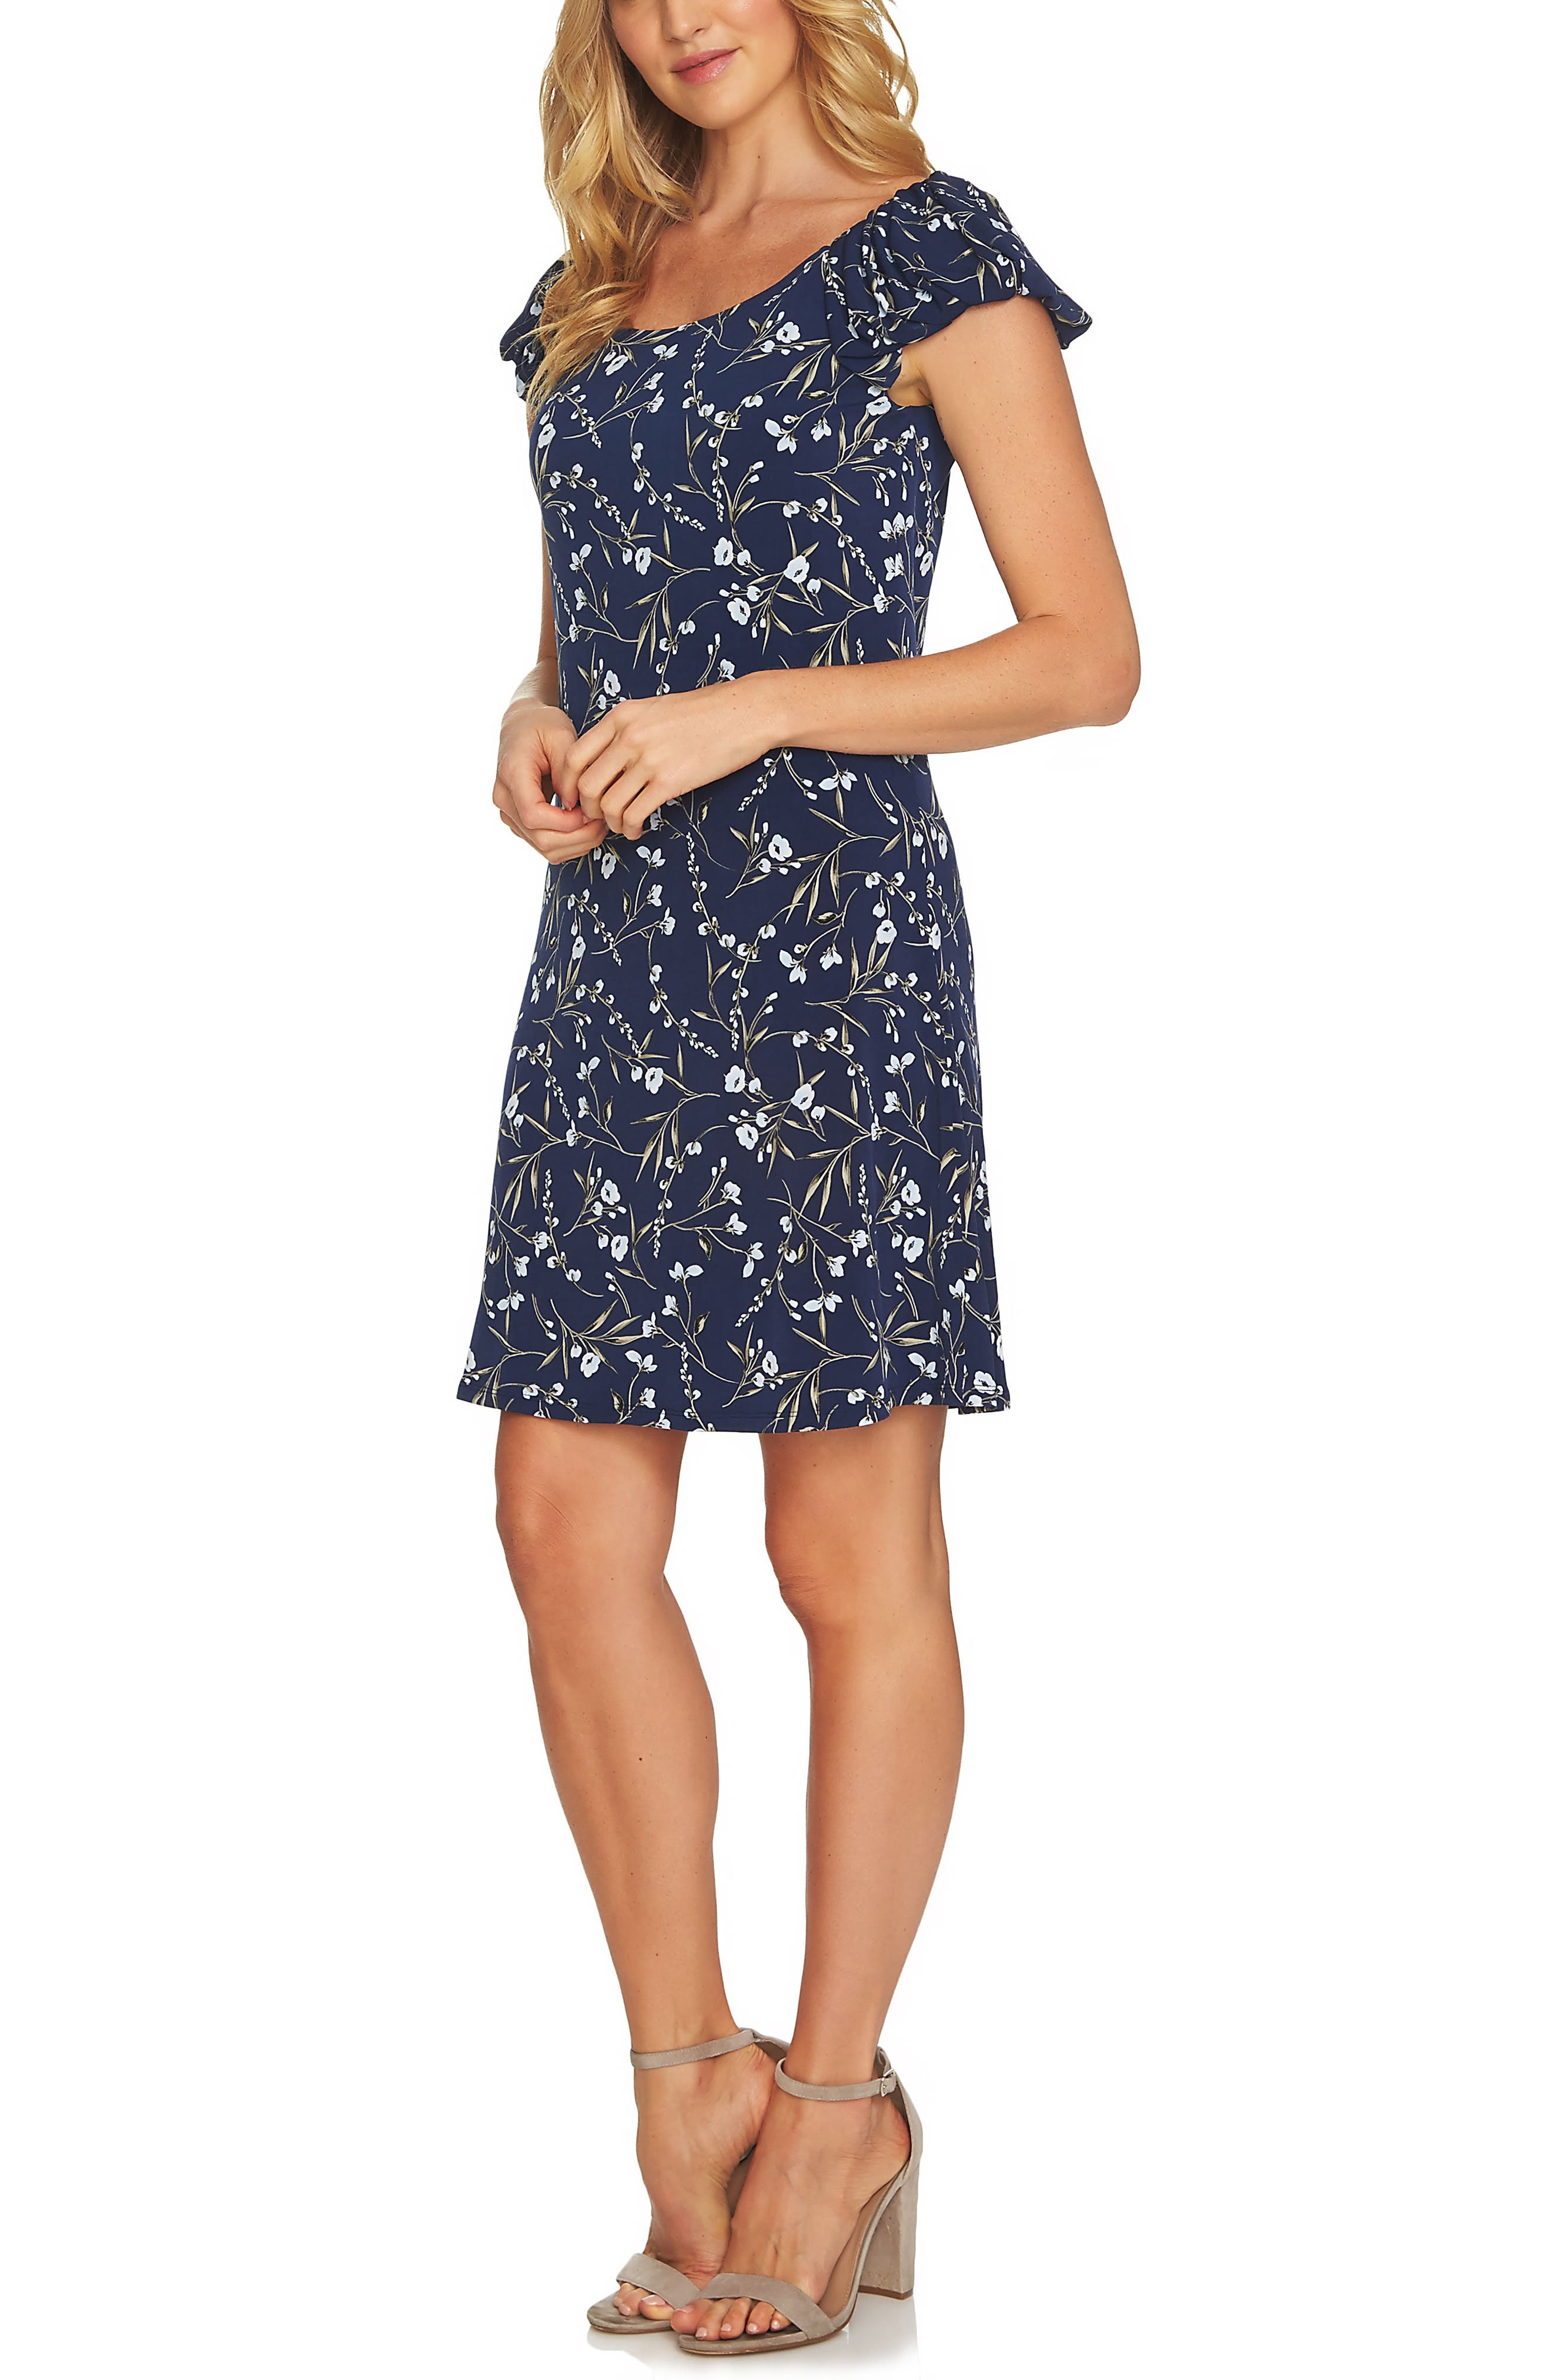 Graceful Flora Puff Sleeve Dress,                             Main thumbnail 1, color,                             Naval Navy